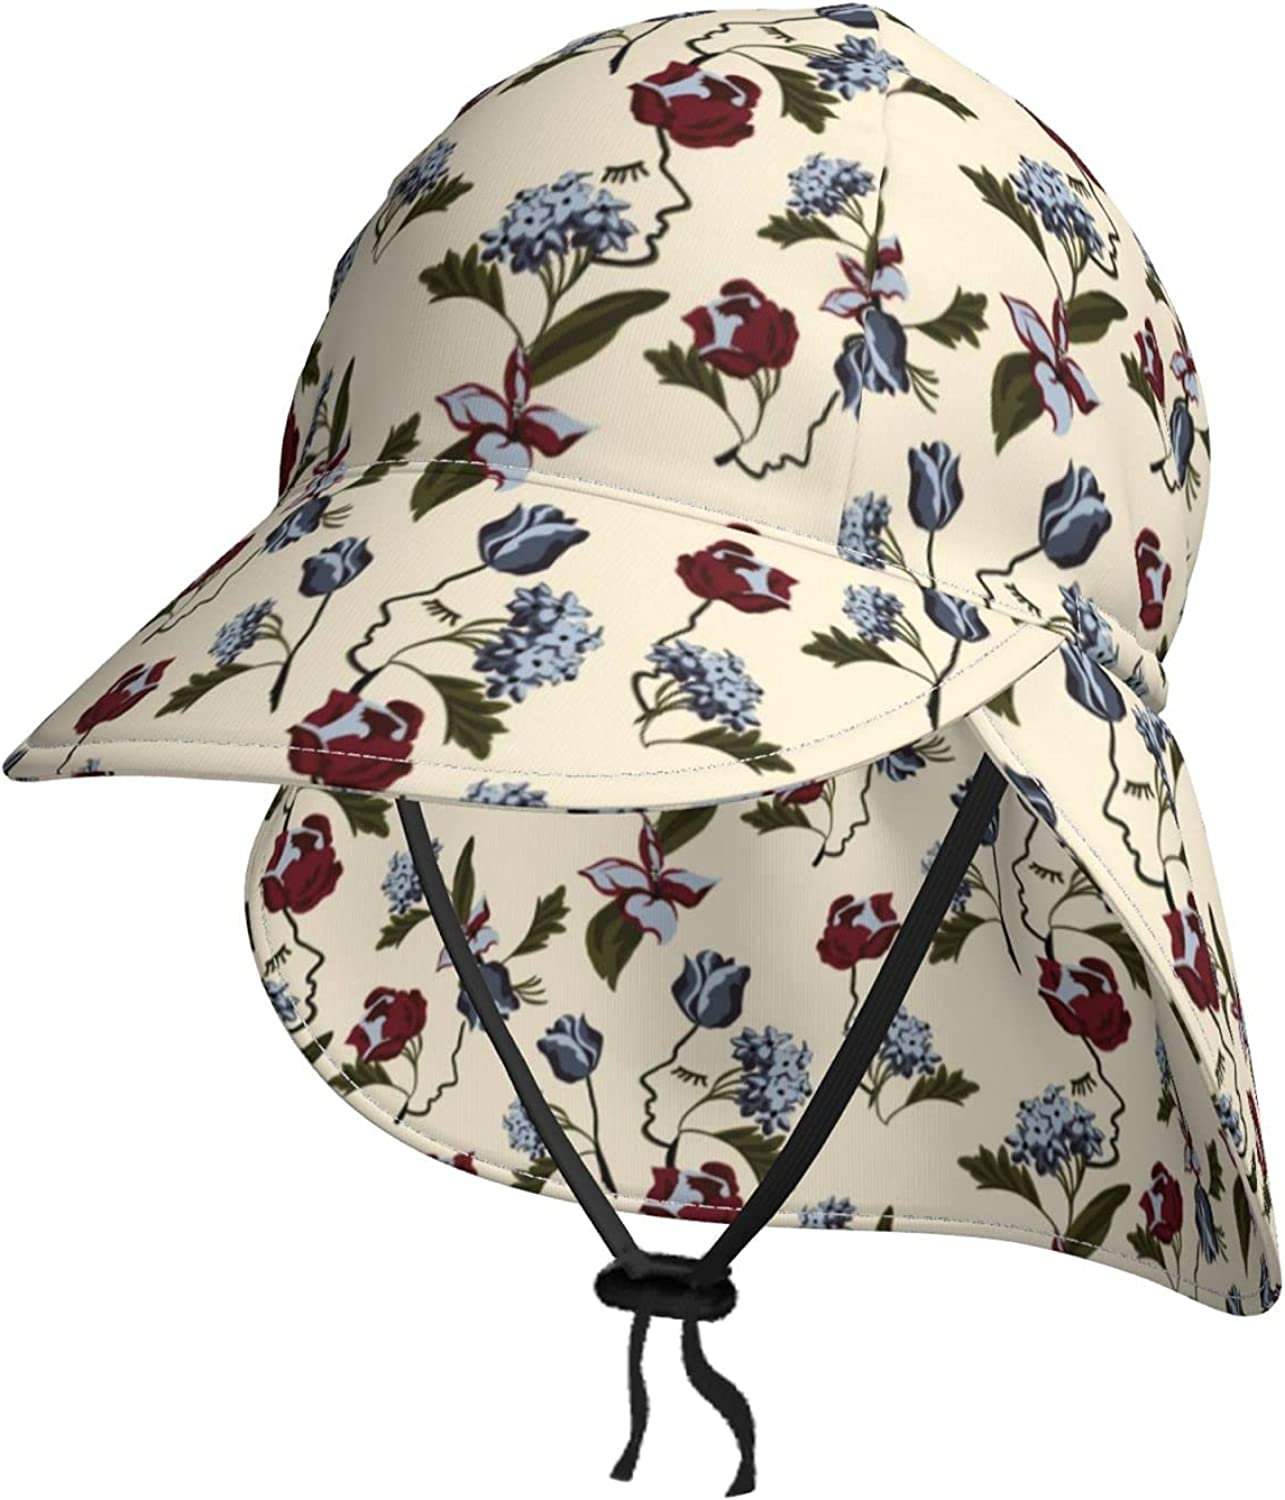 Lisianthus Flower Large discharge sale Sun Hat for Beach Topics on TV Kids Protection Baby Boy